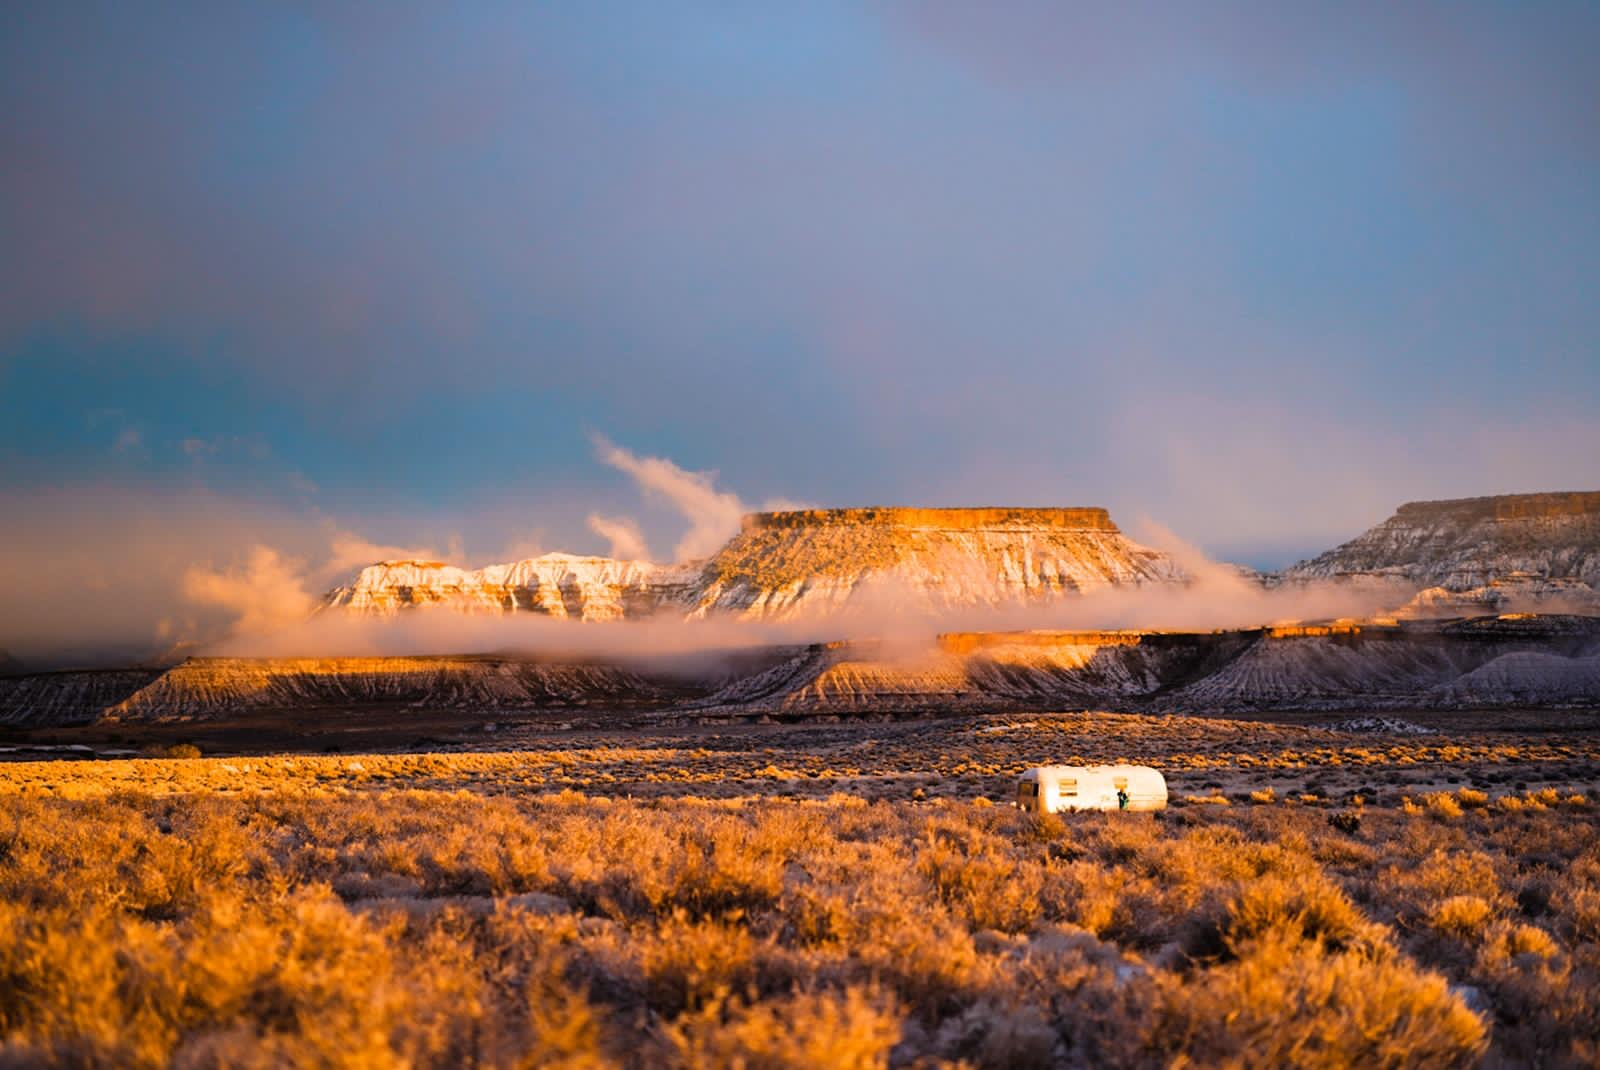 The Foxes Photography 72 Airstream on BLM land. Image: The Foxes Photography